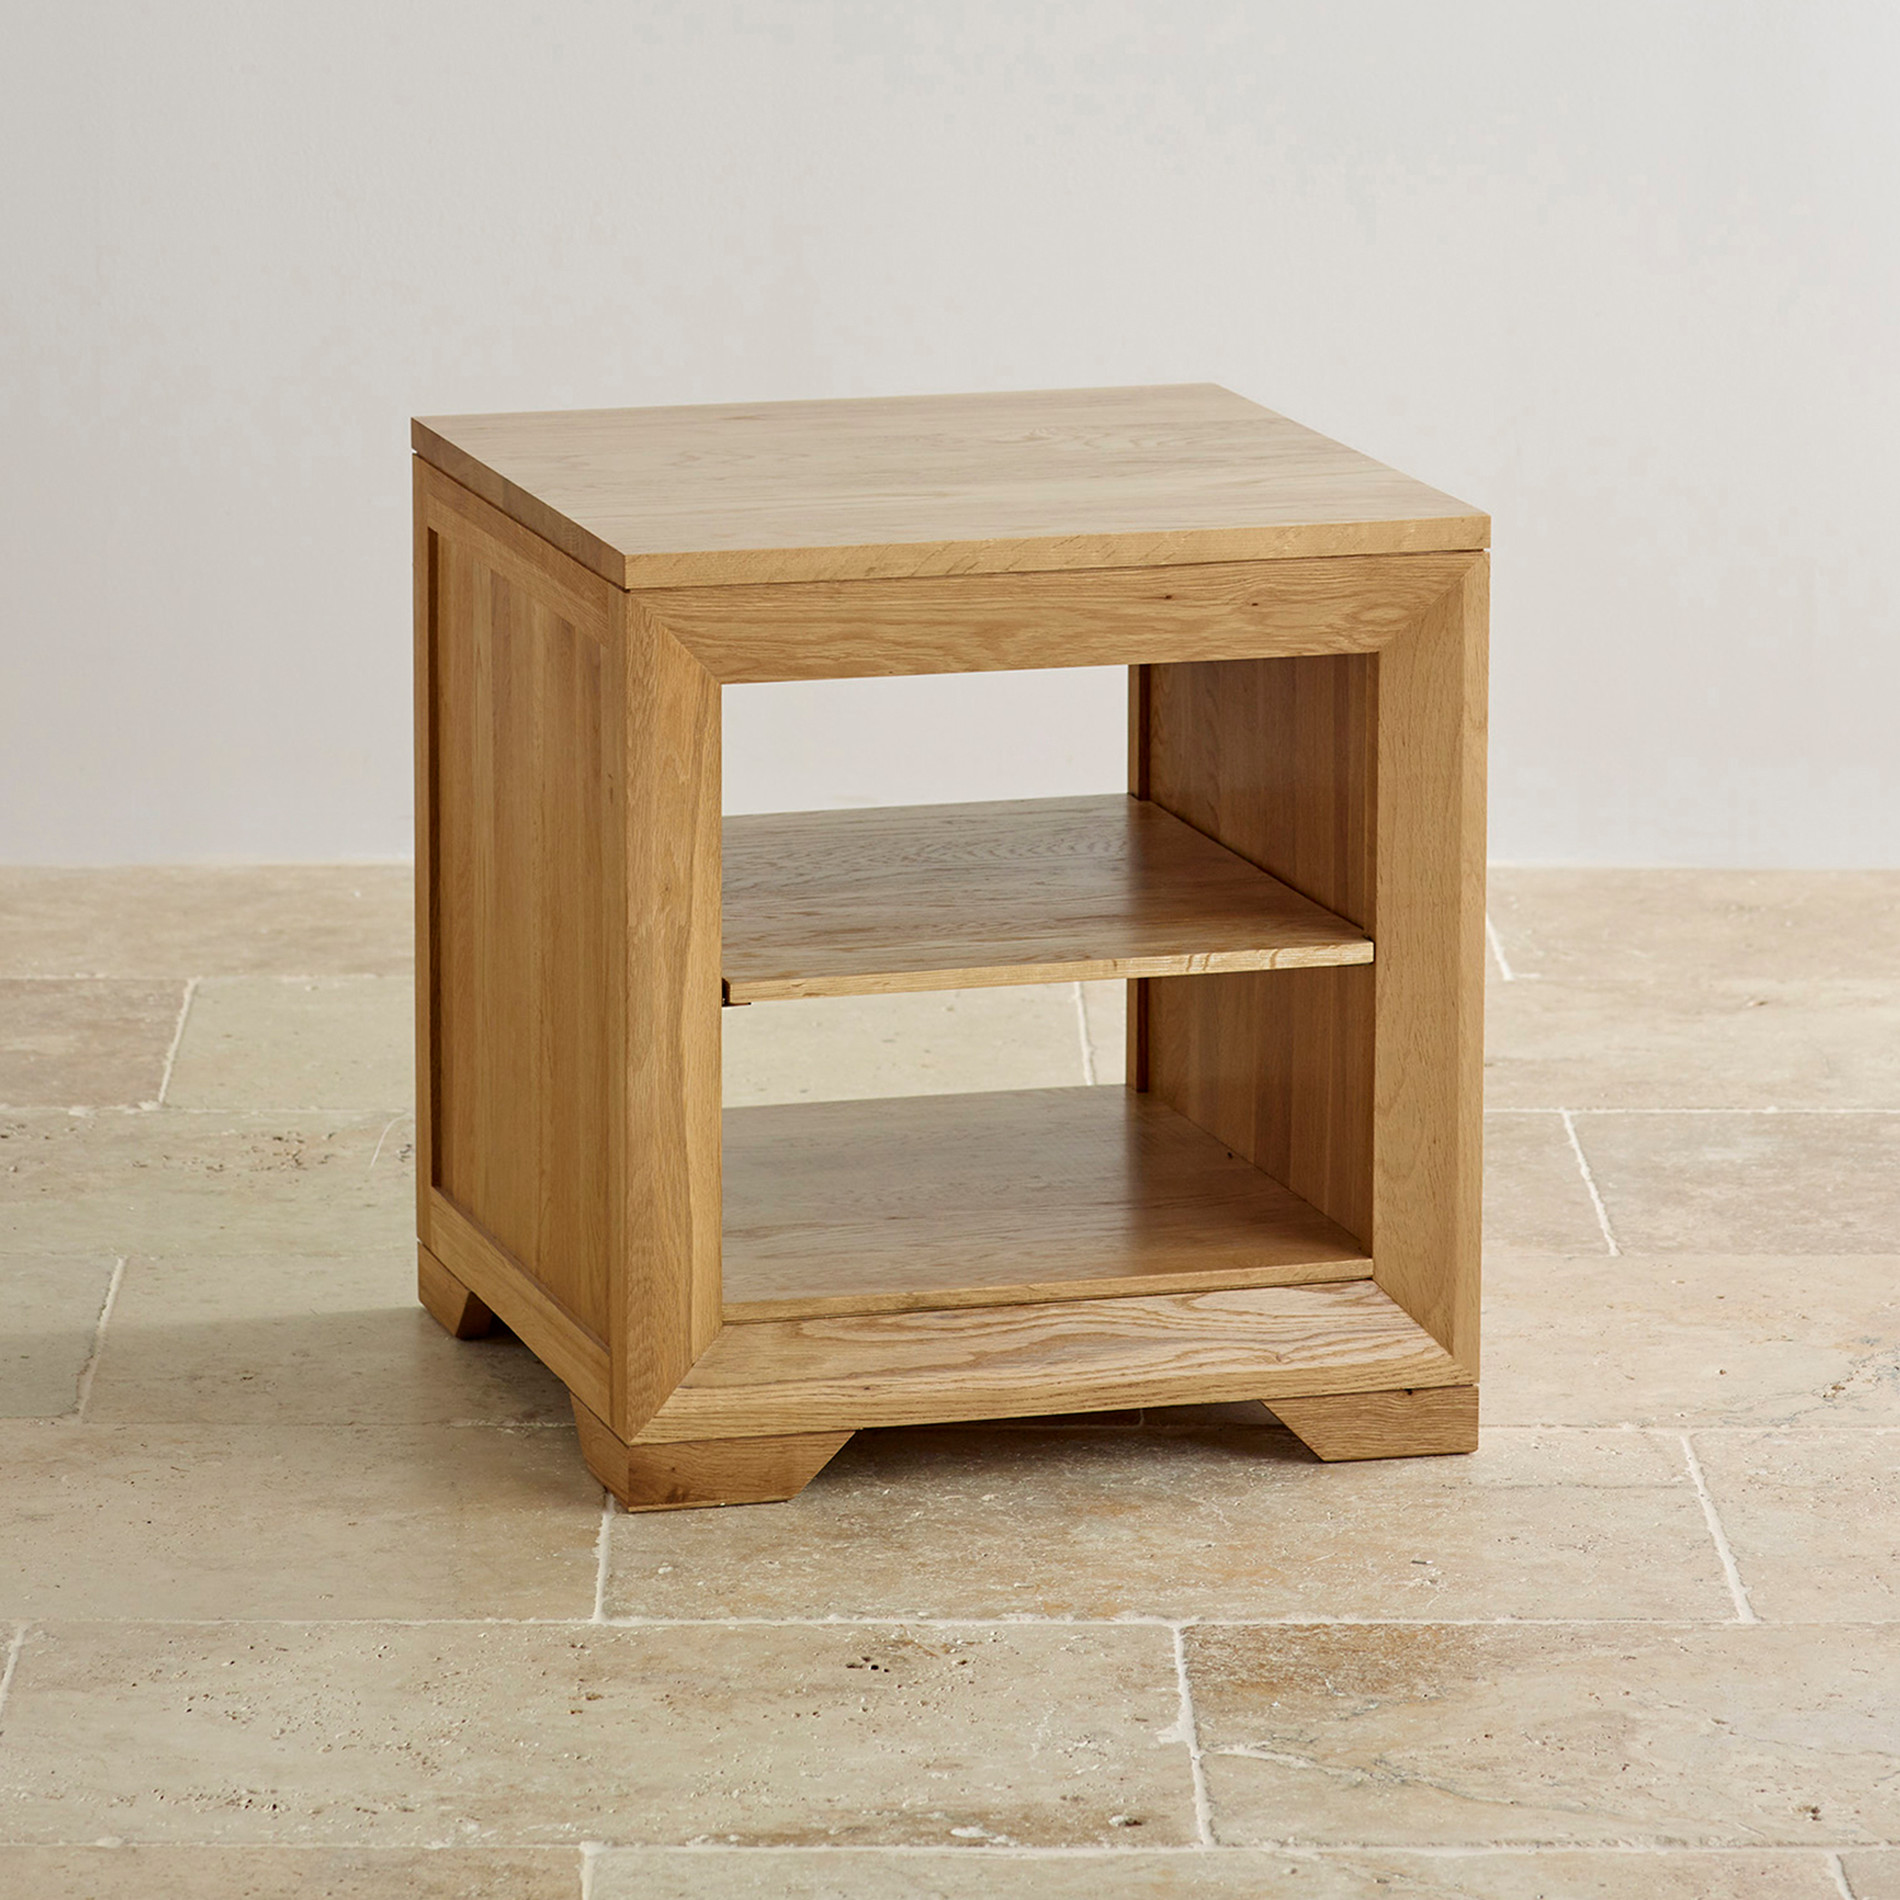 Bevel Bedside Table with Shelf in Natural Solid Oak